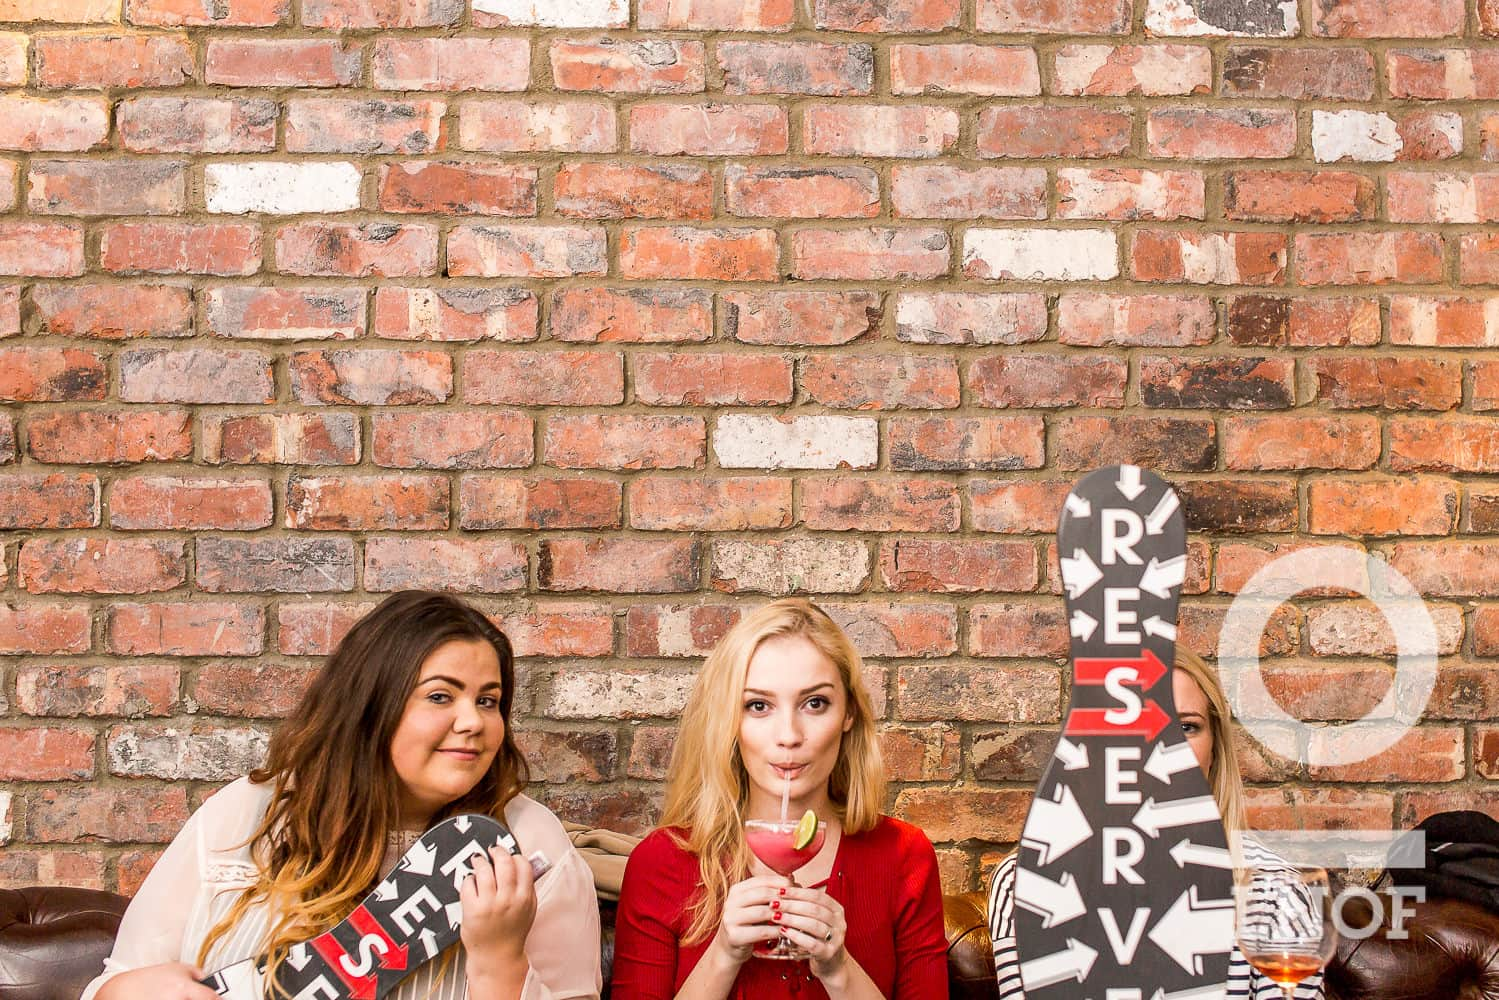 Three girls sitting, one covered by a wooden bowling pin, in front of an exposed brick wall